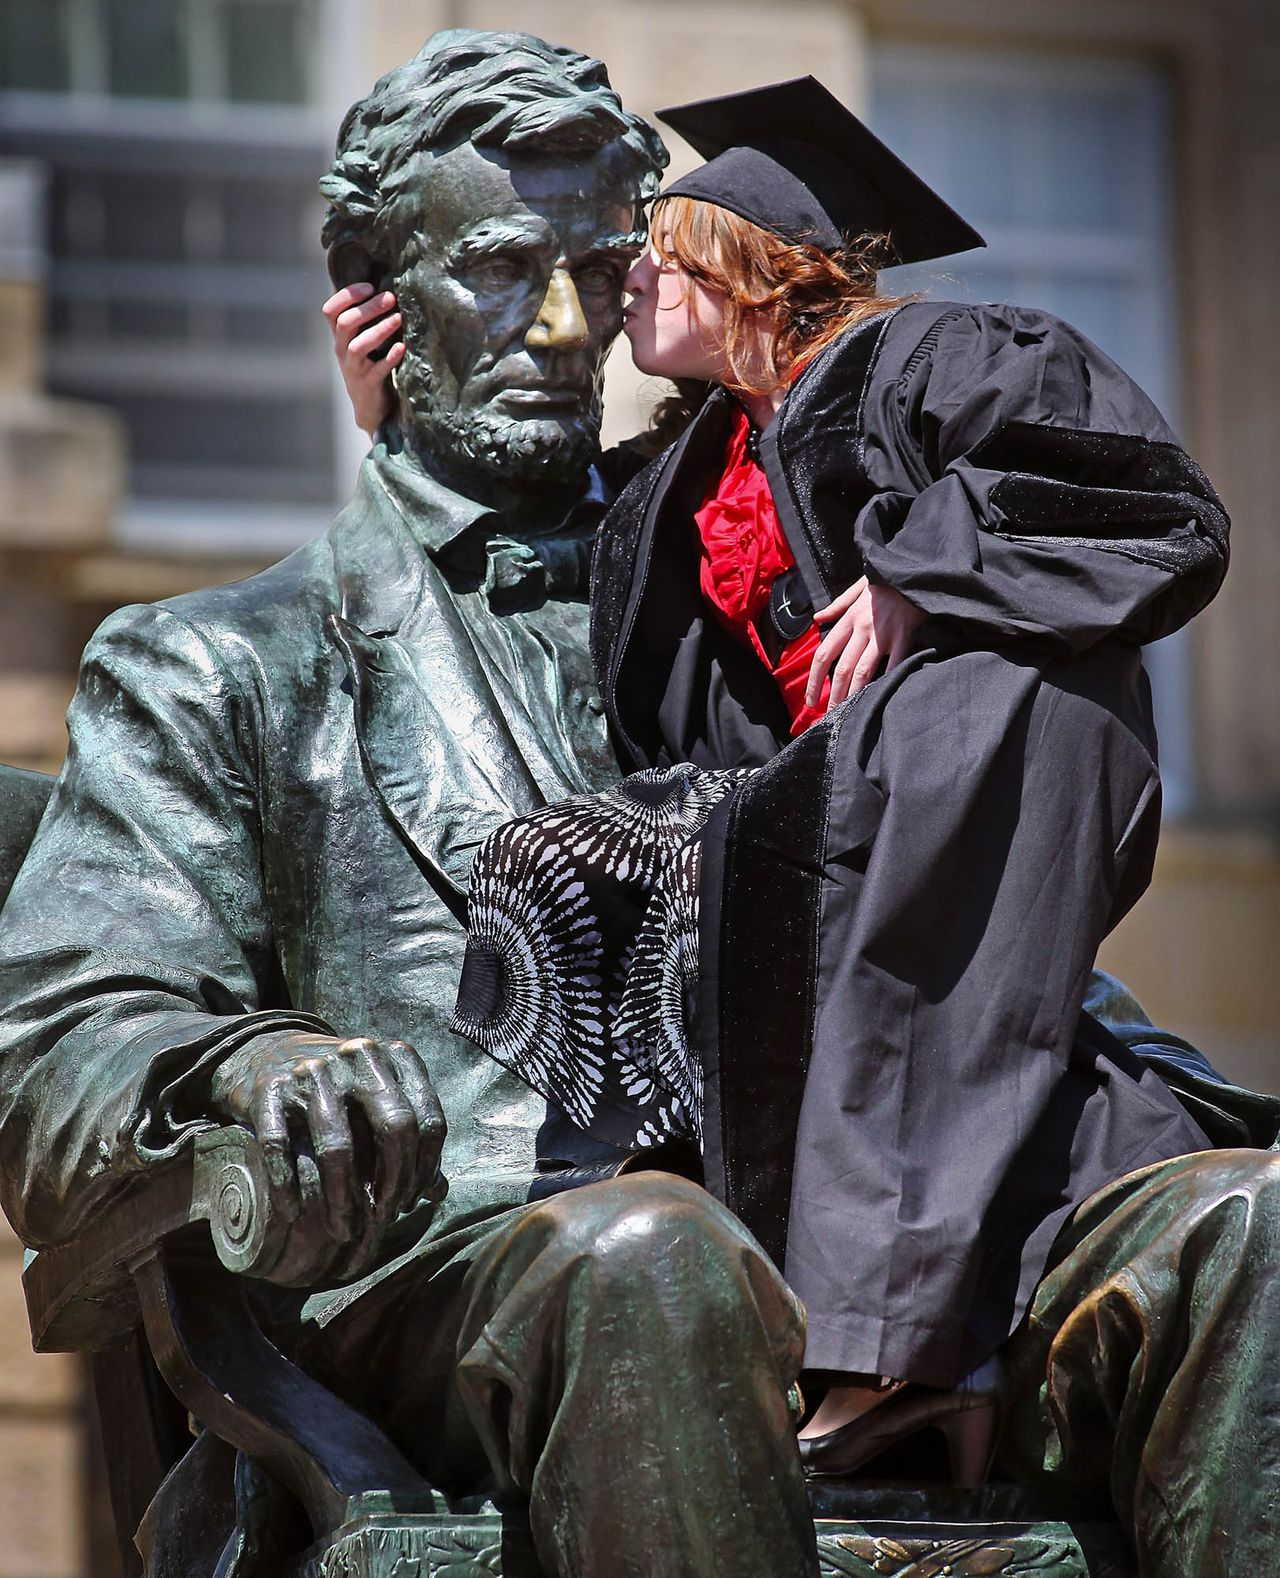 University of Wisconsin-Madison pharmacy school graduate Samantha Miller gives the Abraham Lincoln statue on the UW campus a kiss on Friday, May 18, 2012 in Madison, Wis. With help from family members and friends, students in caps and gowns climbed into the lap of the statue, the top which is more than 13 feet off the ground, to have their pictures taken in a graduation tradition on Bascom Hill, the historic center of campus. (AP Photo/Wisconsin State Journal, Craig Schreiner)